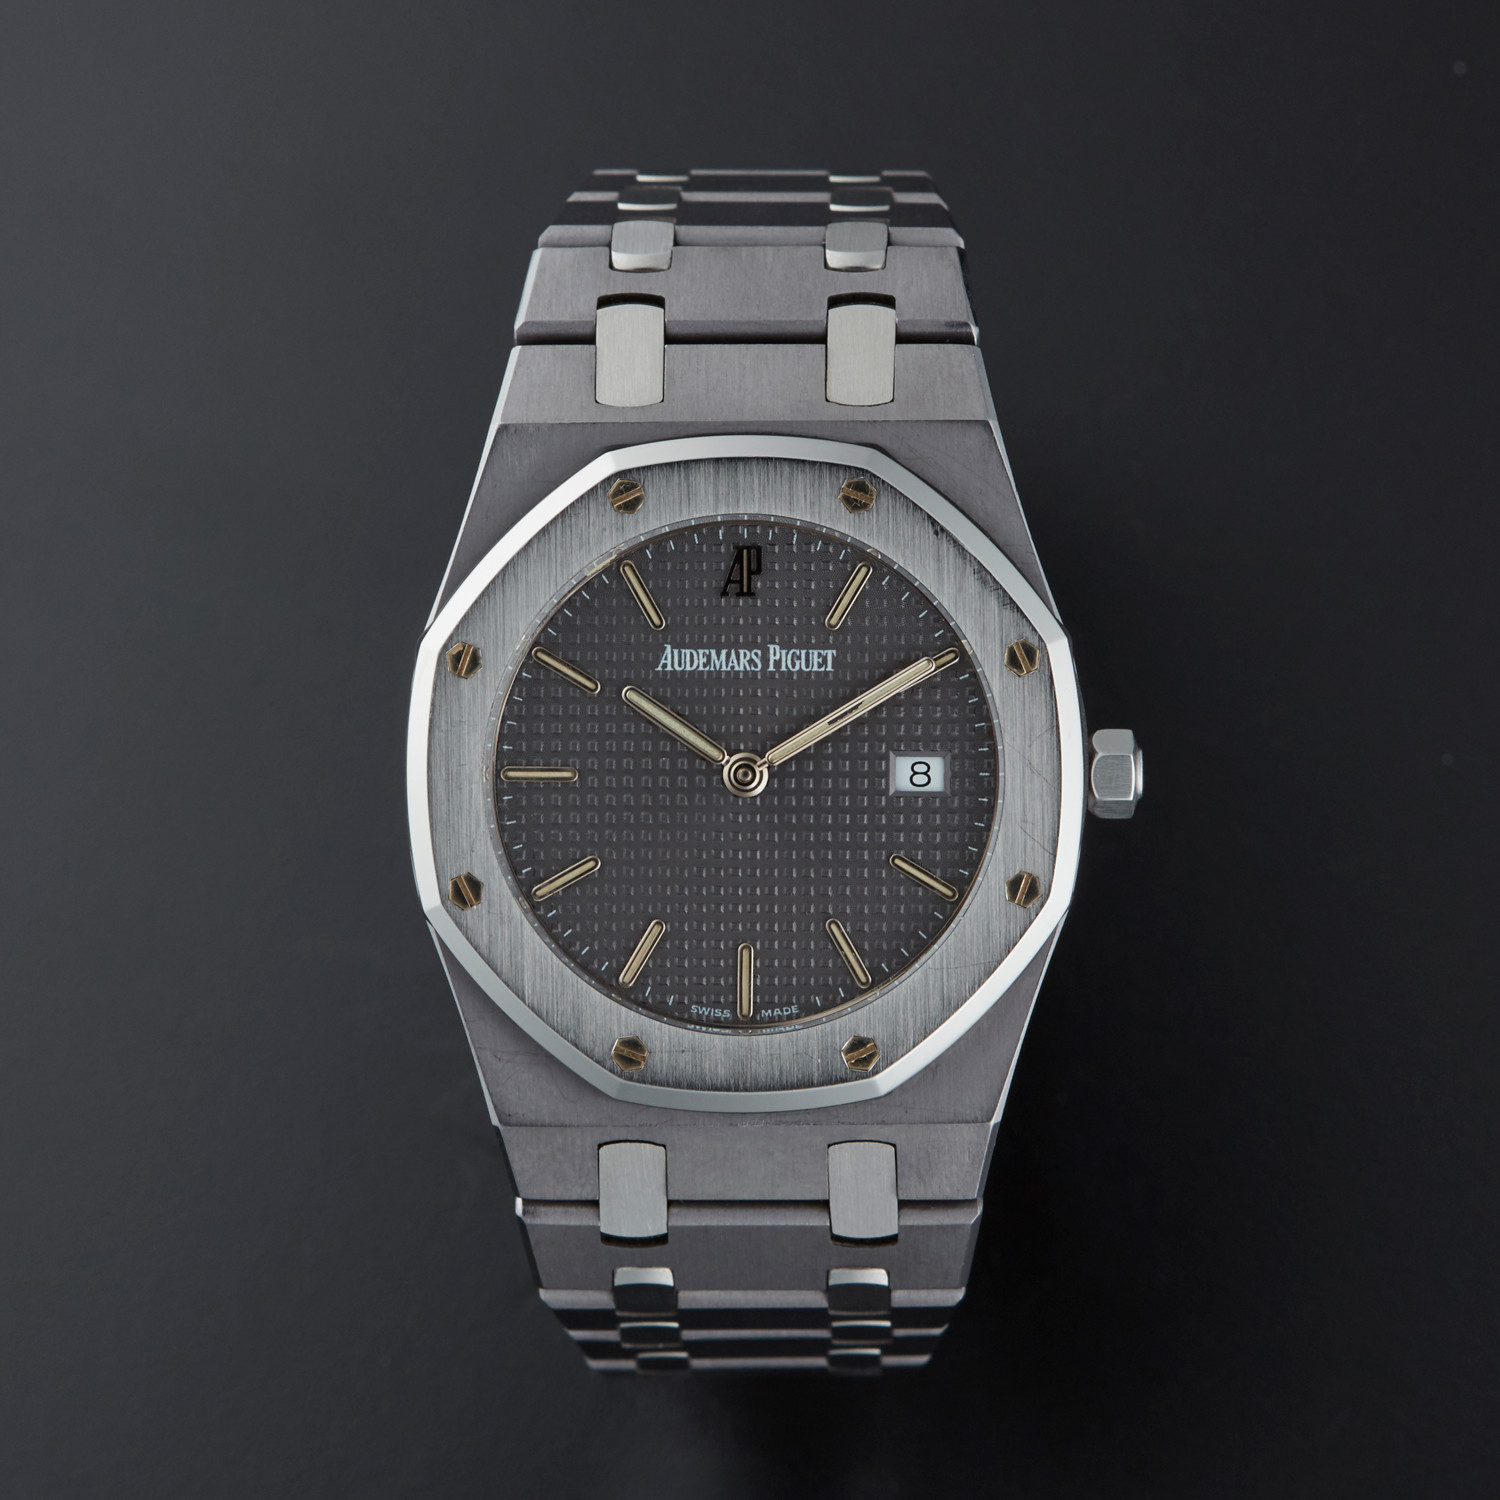 1b3900987c4 D52a43a5691e40c43dea3aa55e1d6053 medium · Audemars Piguet Royal Oak ...